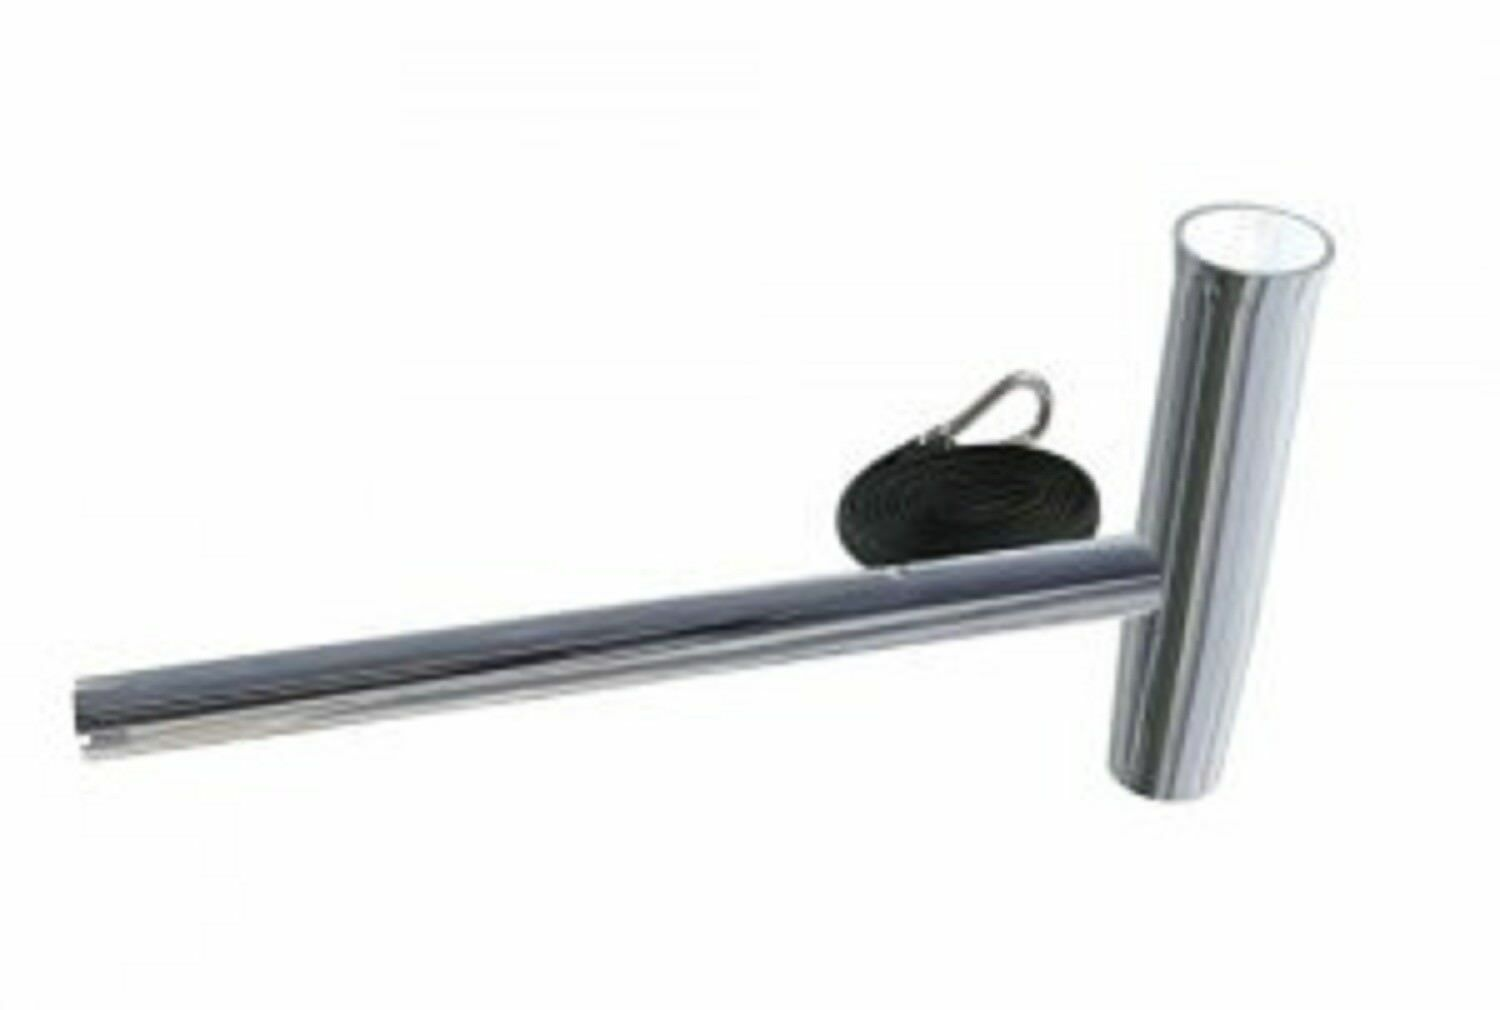 Taco Marine  Gunnel Mount Rigger Rod Holder F31-0510BSA  a lot of concessions